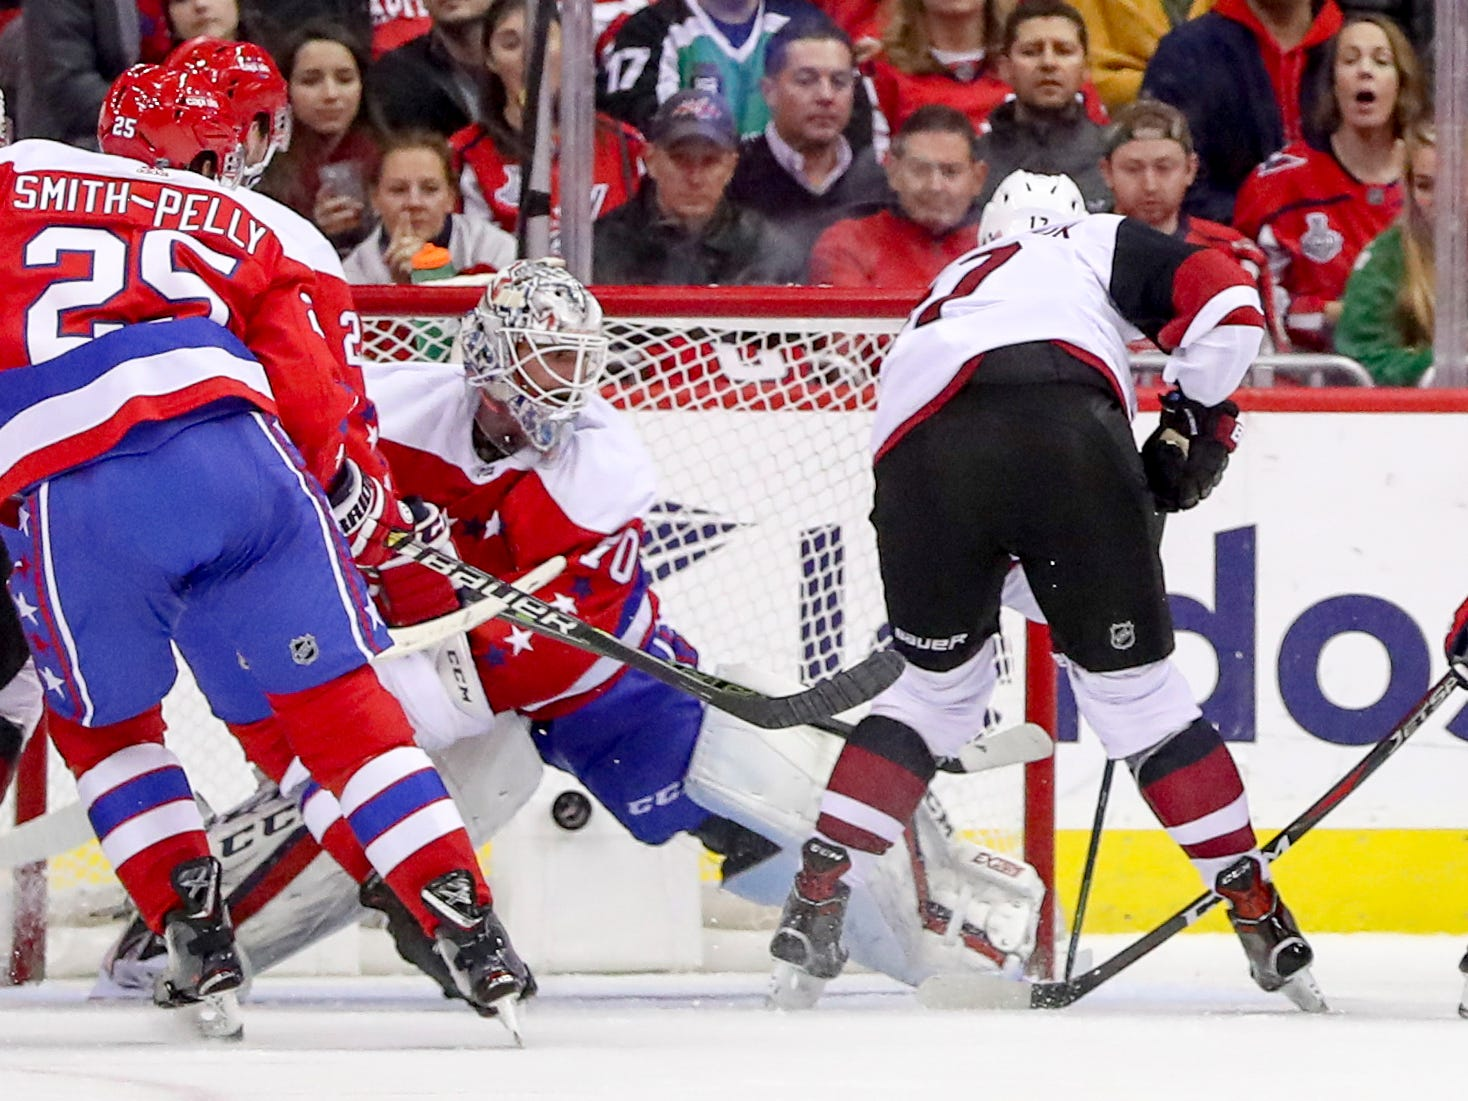 Arizona Coyotes center Alex Galchenyuk, right, scores against Washington Capitals goaltender Braden Holtby in the second period of an NHL hockey game, Sunday, Nov. 11, 2018 in Washington. (AP Photo/Andrew Harnik)